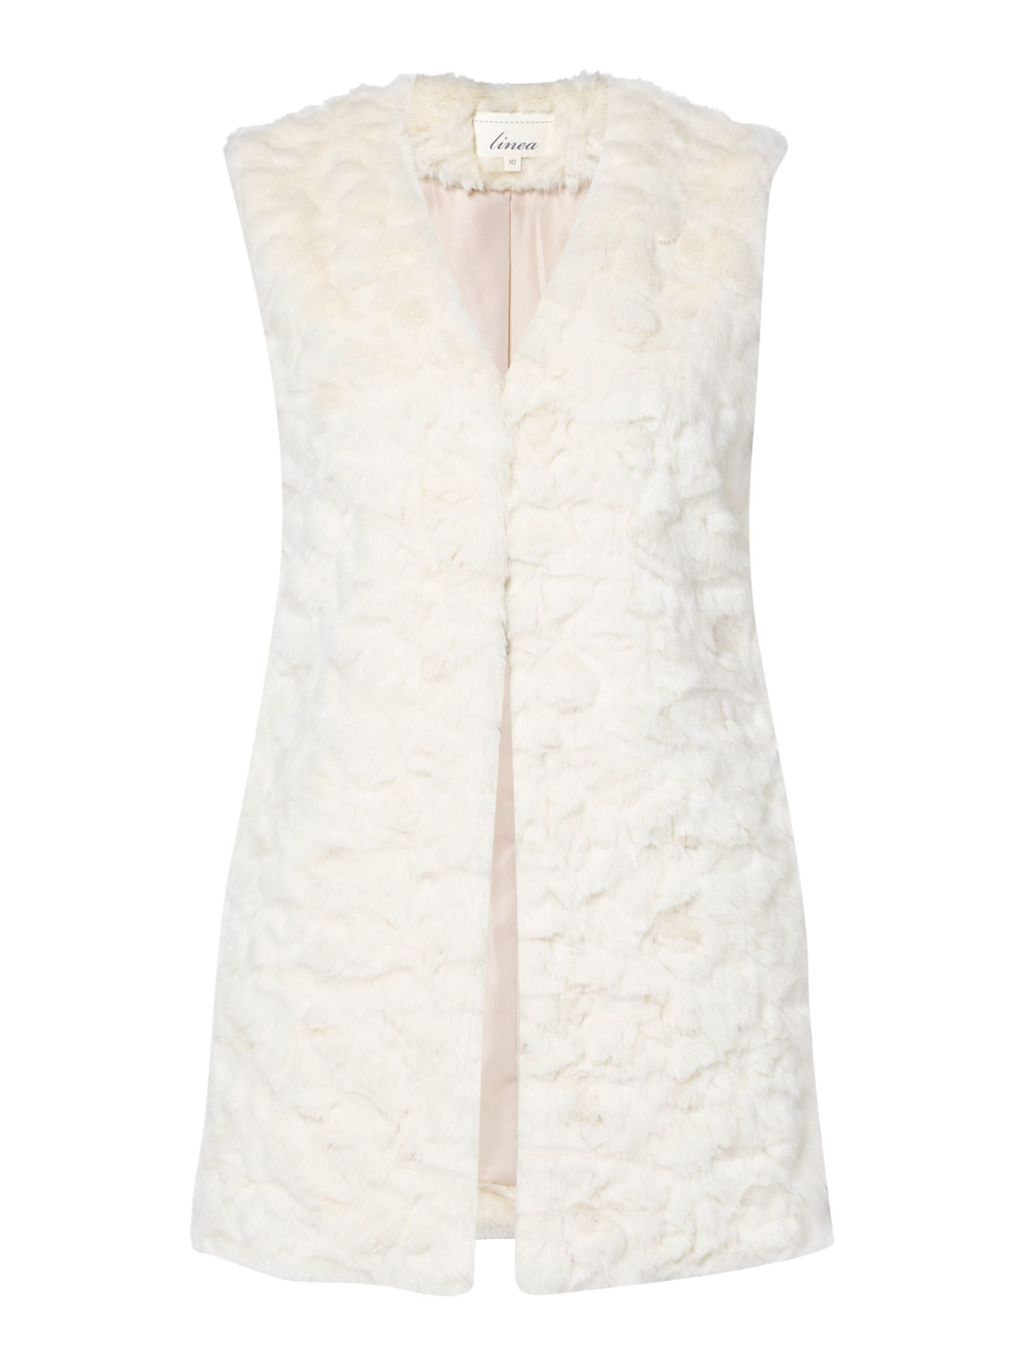 Limited Faux Fur Gilet, Ivory - pattern: plain; sleeve style: sleeveless; style: gilet; collar: round collar/collarless; length: below the bottom; predominant colour: ivory/cream; occasions: casual; fit: straight cut (boxy); fibres: acrylic - 100%; sleeve length: sleeveless; texture group: fur; collar break: medium; pattern type: fabric; season: s/s 2016; wardrobe: highlight